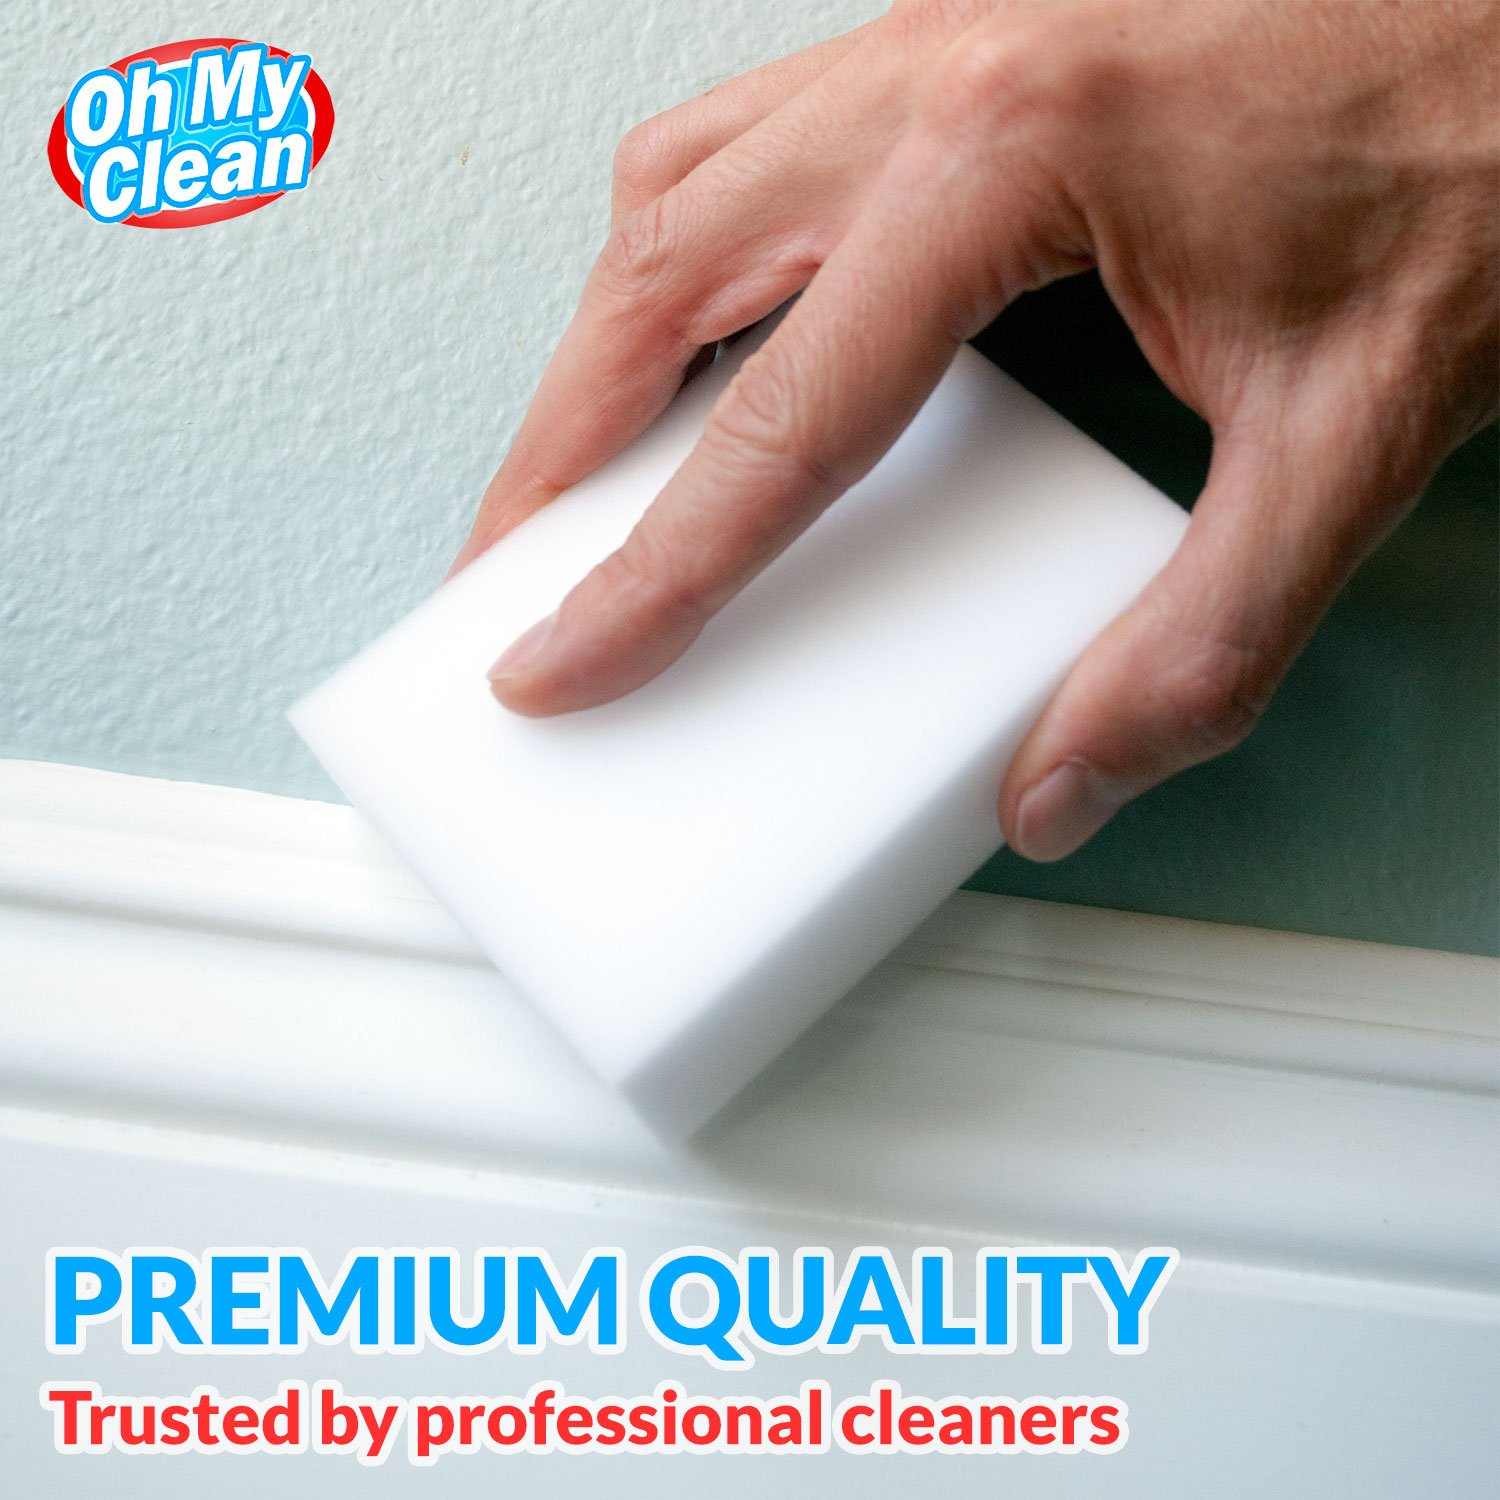 (100 Pack) Extra Large Magic Cleaning Eraser Sponge - 2X Thick, 2X Longer Lasting Melamine Sponges in Bulk - Multi Surface Power Scrubber Foam Pads - Bathtub, Floor, Baseboard, Bathroom, Wall Cleaner by Oh My Clean (Image #3)